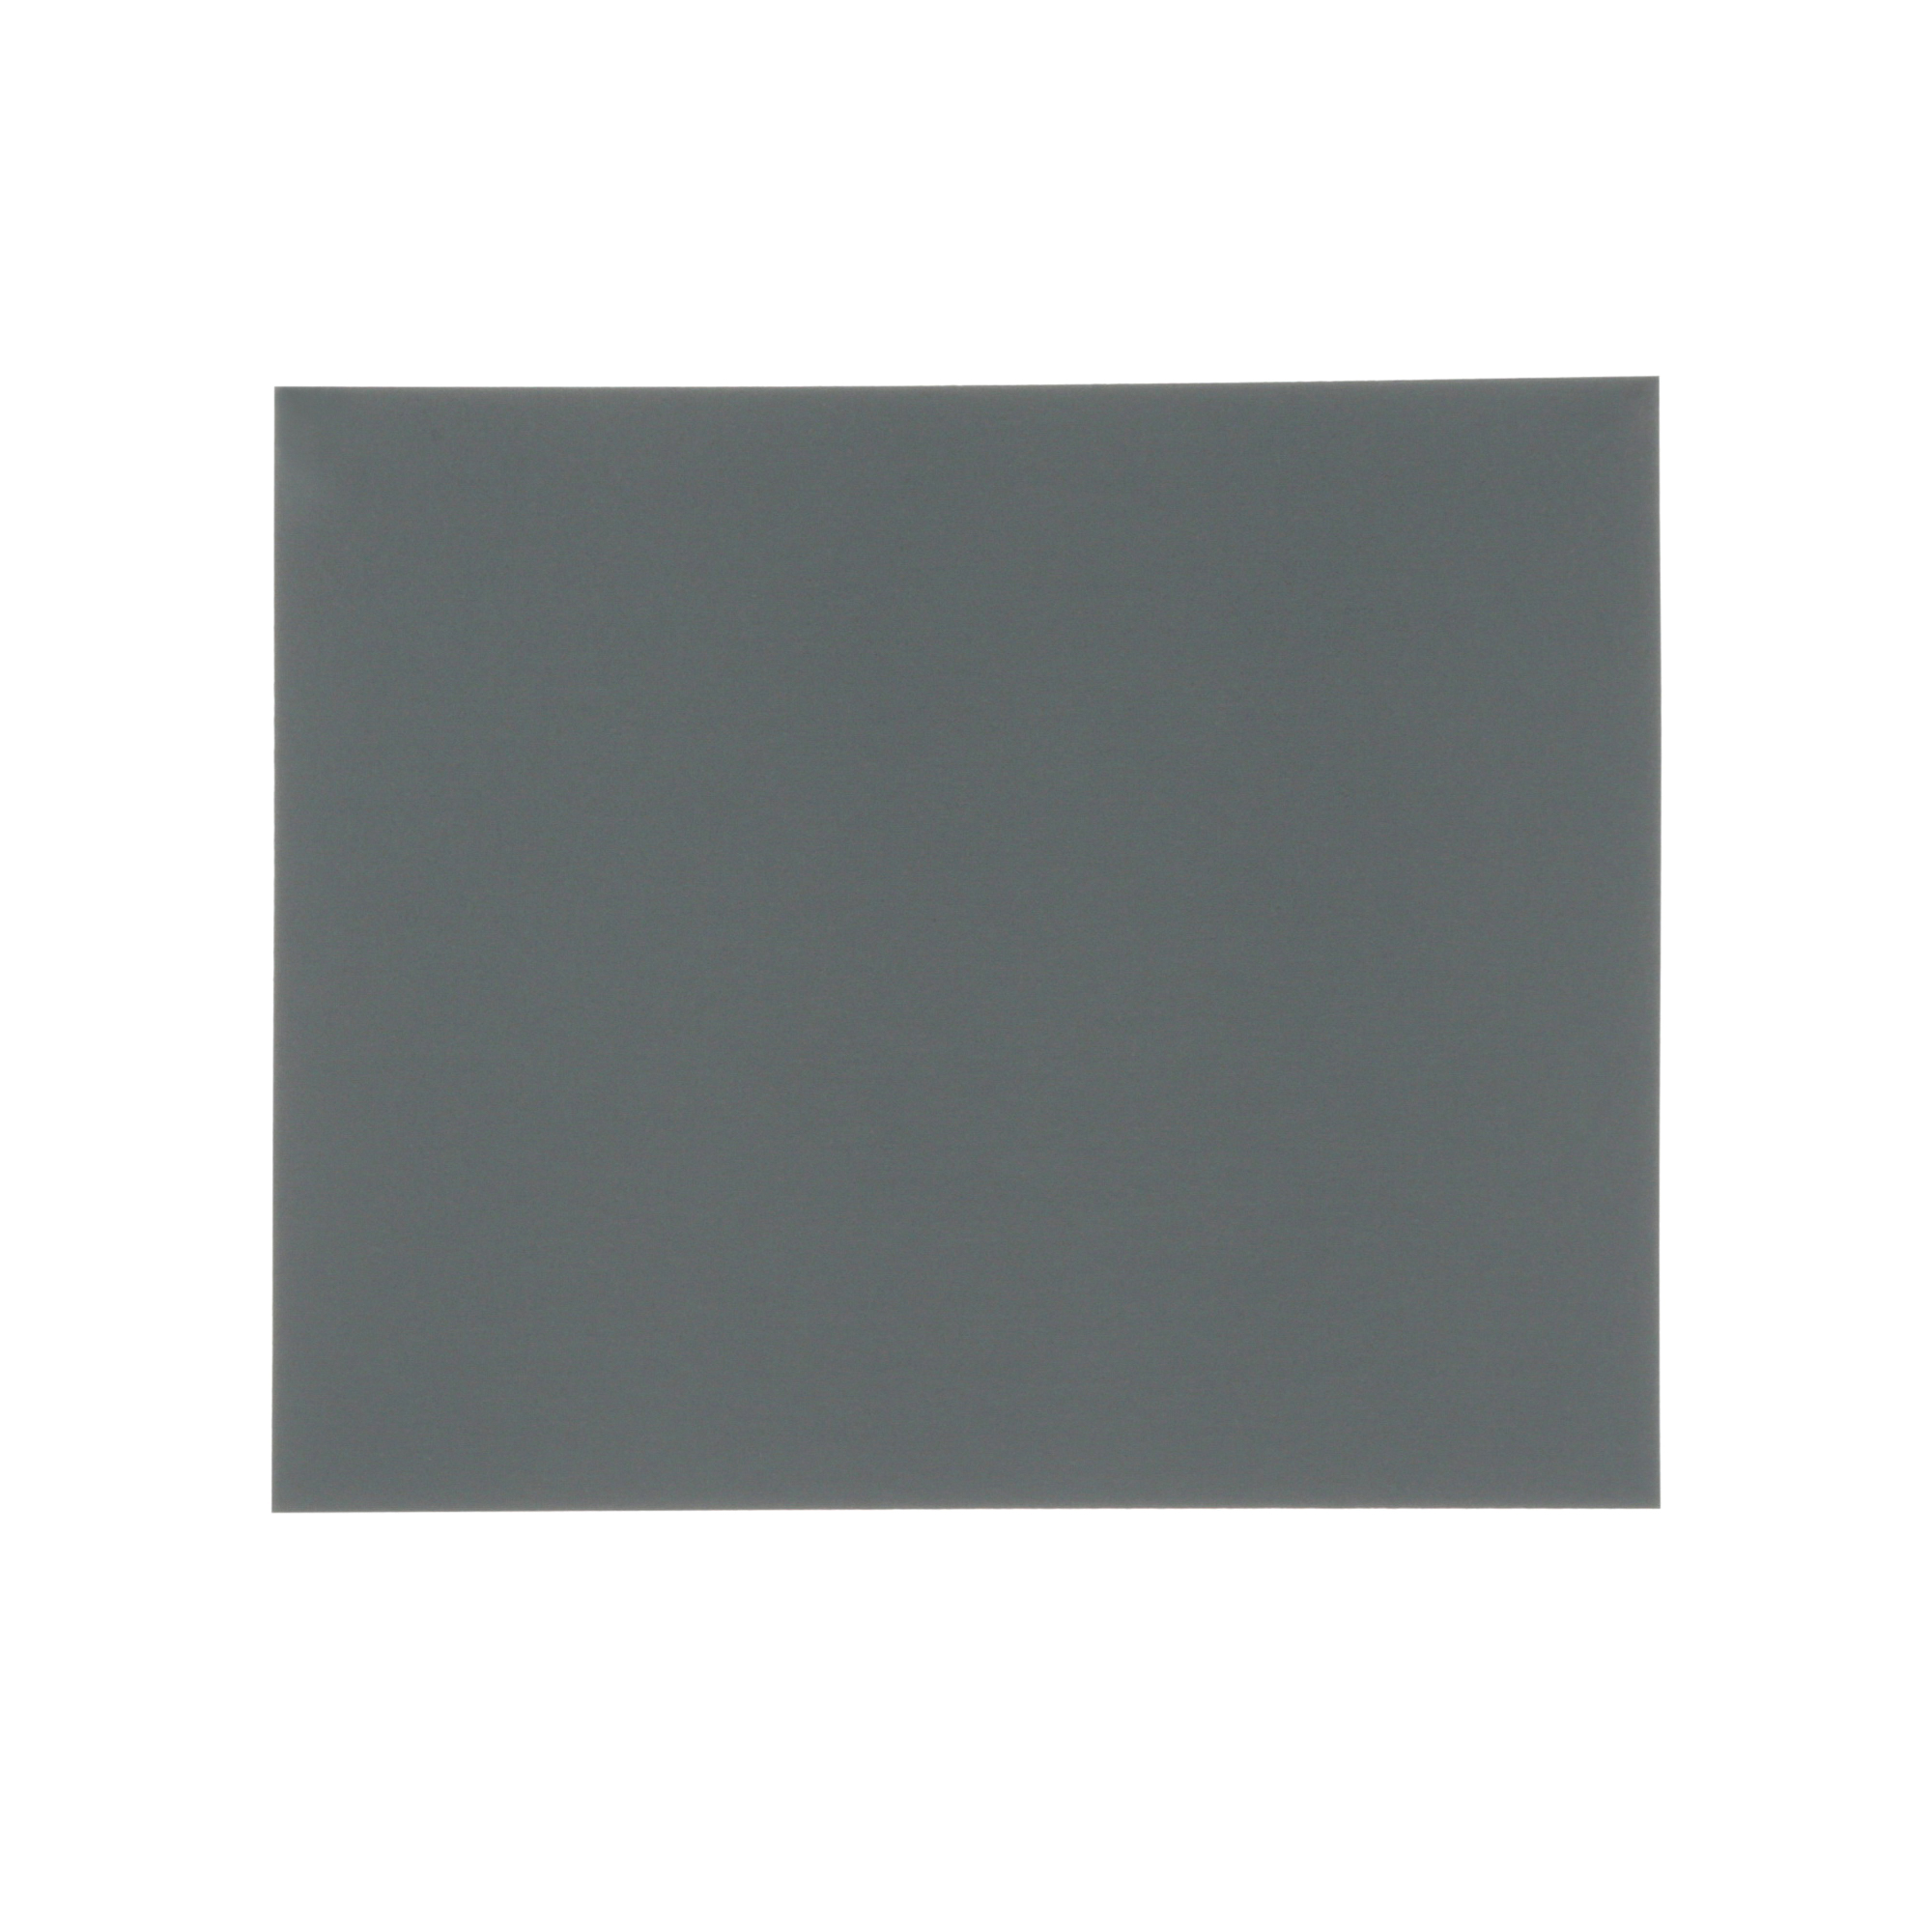 3M™ Wetordry™ 051144-14945 Coated Abrasive Sheet, 5-1/2 in L x 4-1/2 in W, 600 Grit, Super Fine Grade, Silicon Carbide Abrasive, Paper Backing